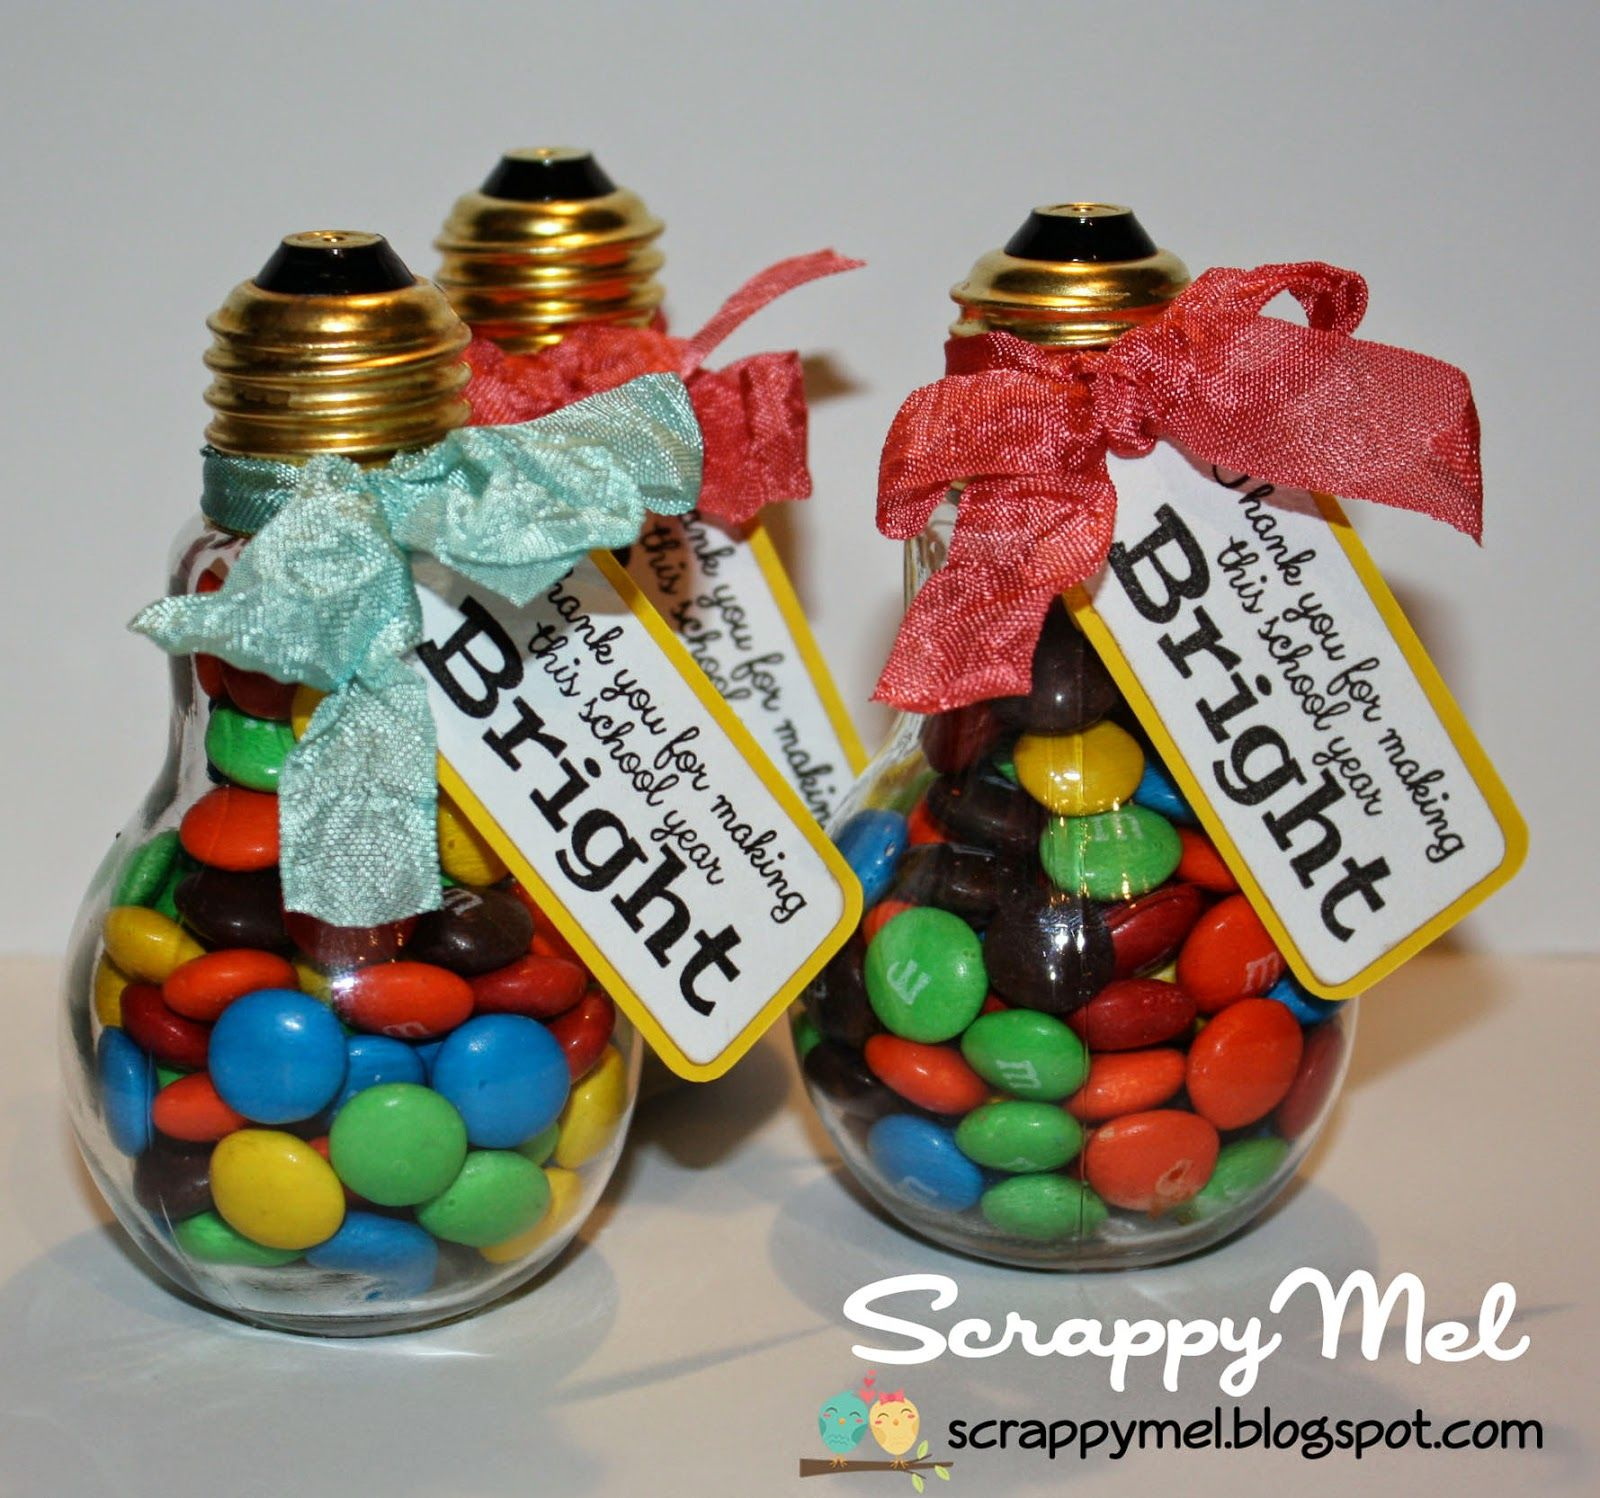 Scrappy Mel Light Bulb Treats Diy Teacher Gifts Diy Graduation Gifts Treat Gift